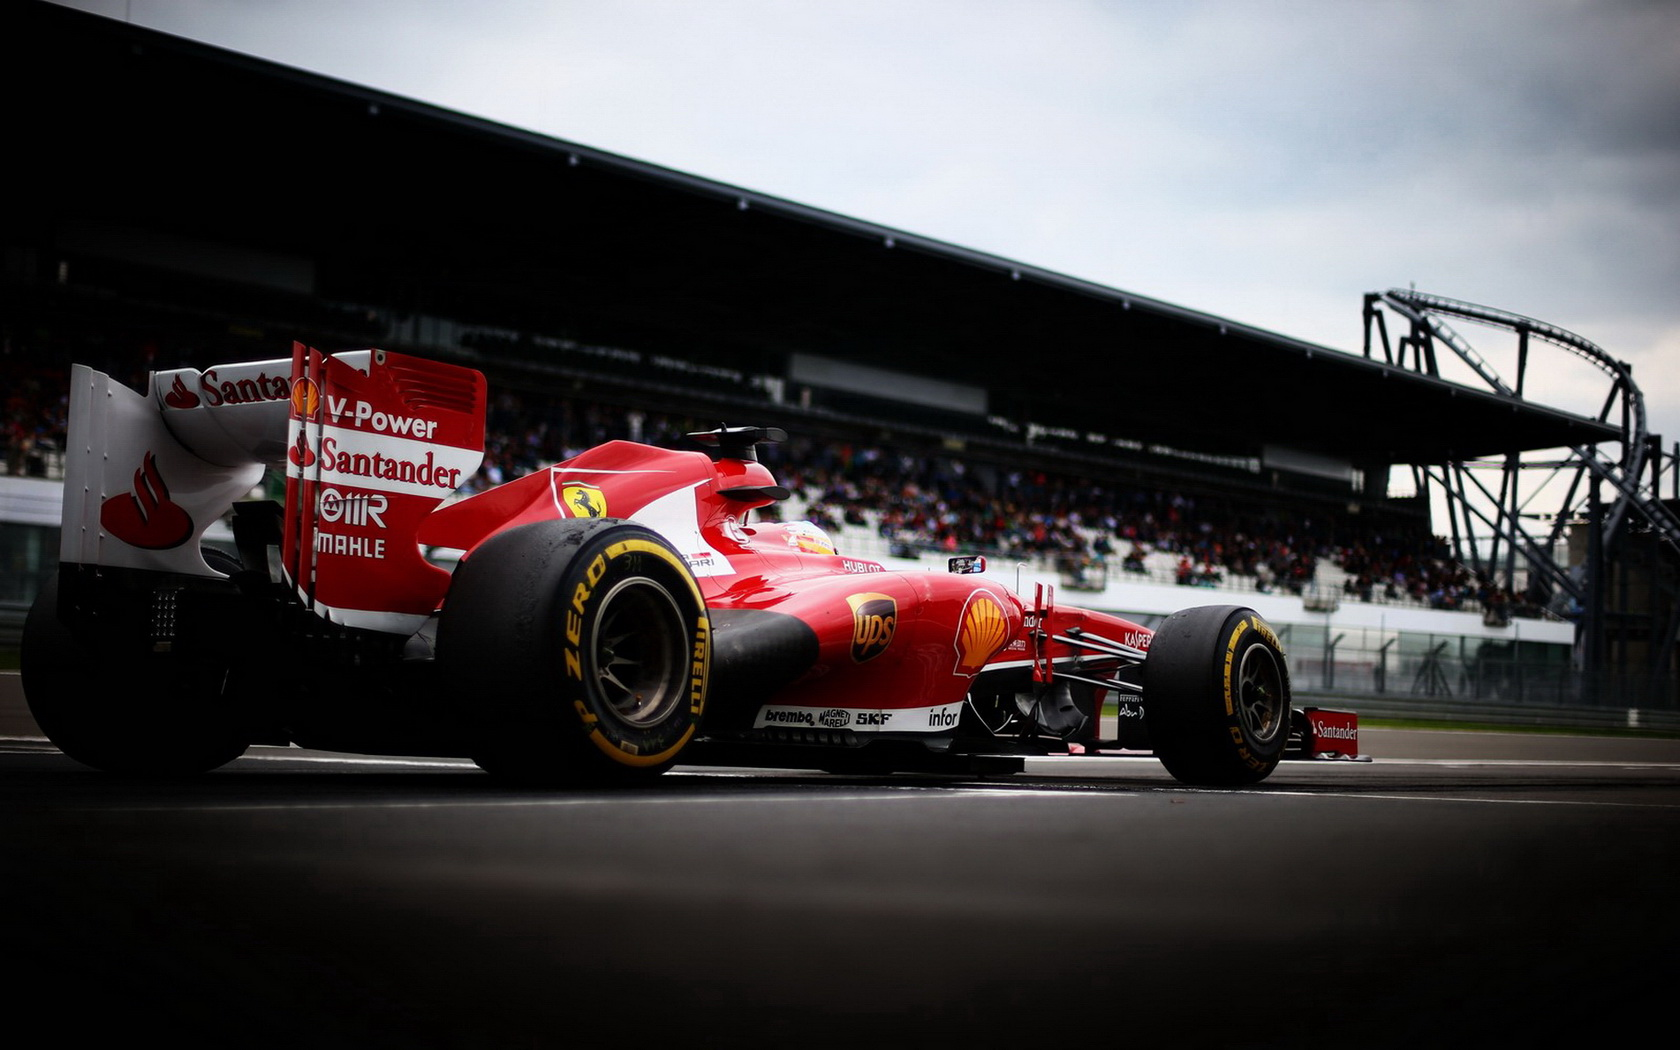 Hd Love Wallpapers For Android Mobile 2016 2017: 36 Fantastic HD Formula 1 Wallpapers